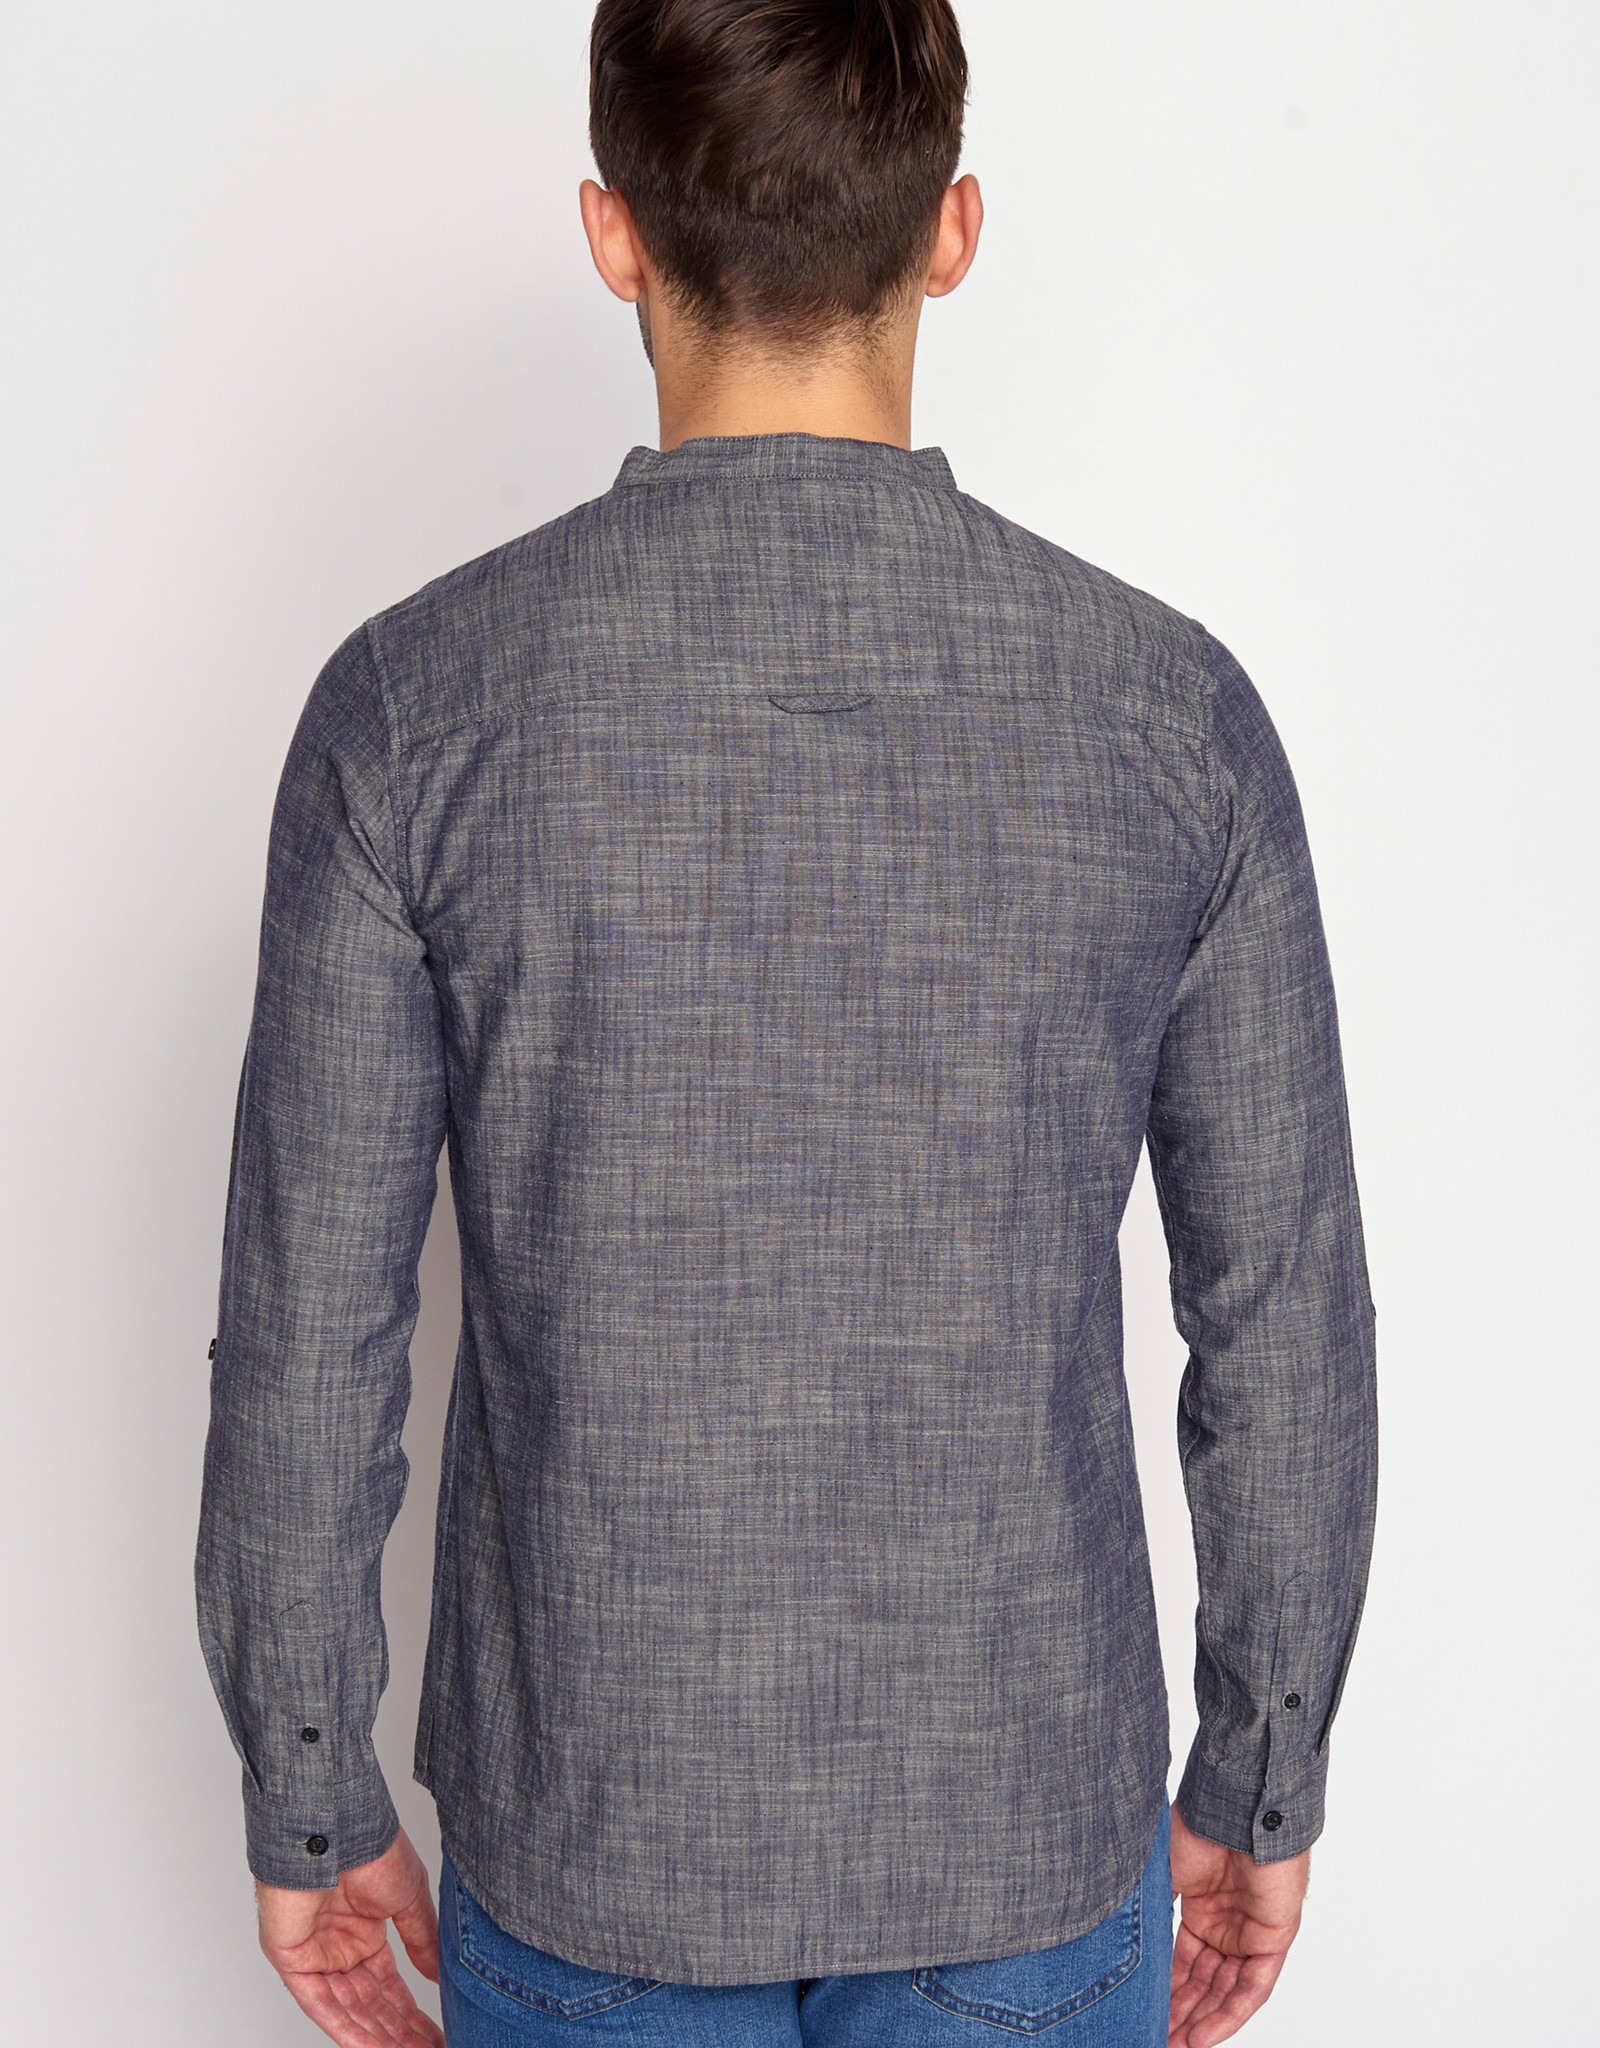 Greenbomb HEMD OFFICIERSKRAAG LONGSLEEVE INK GREY MELANGE